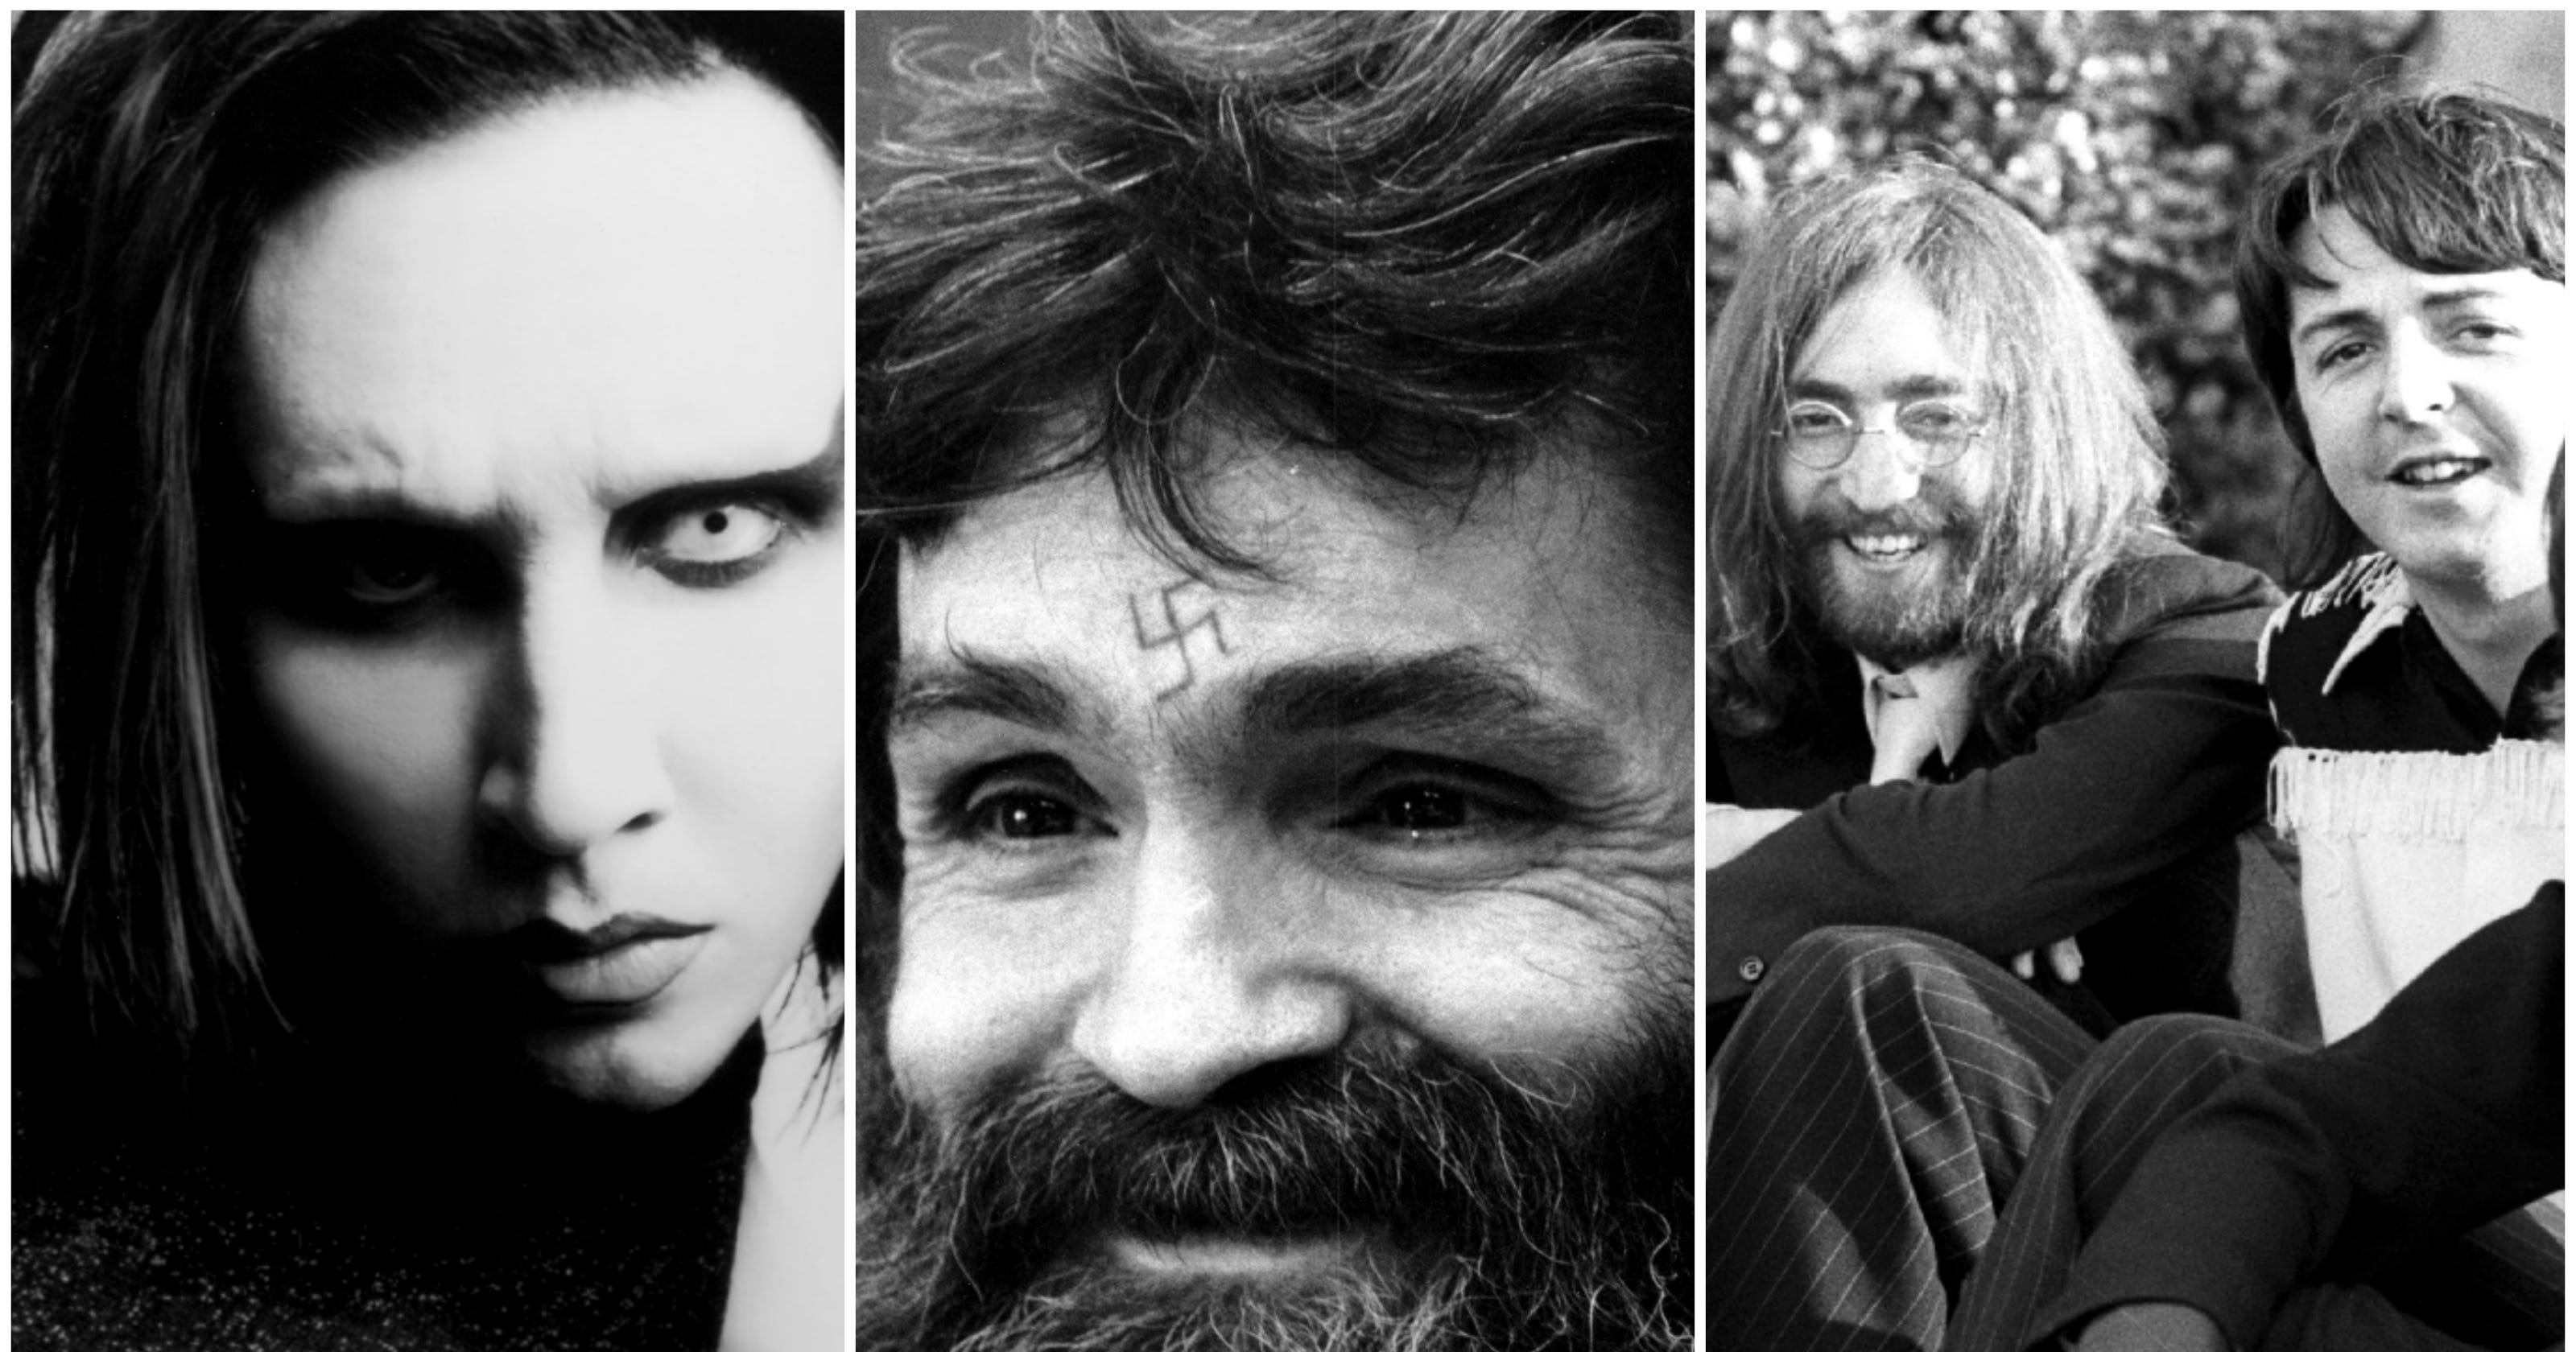 5 ways Charles Manson influenced pop culture